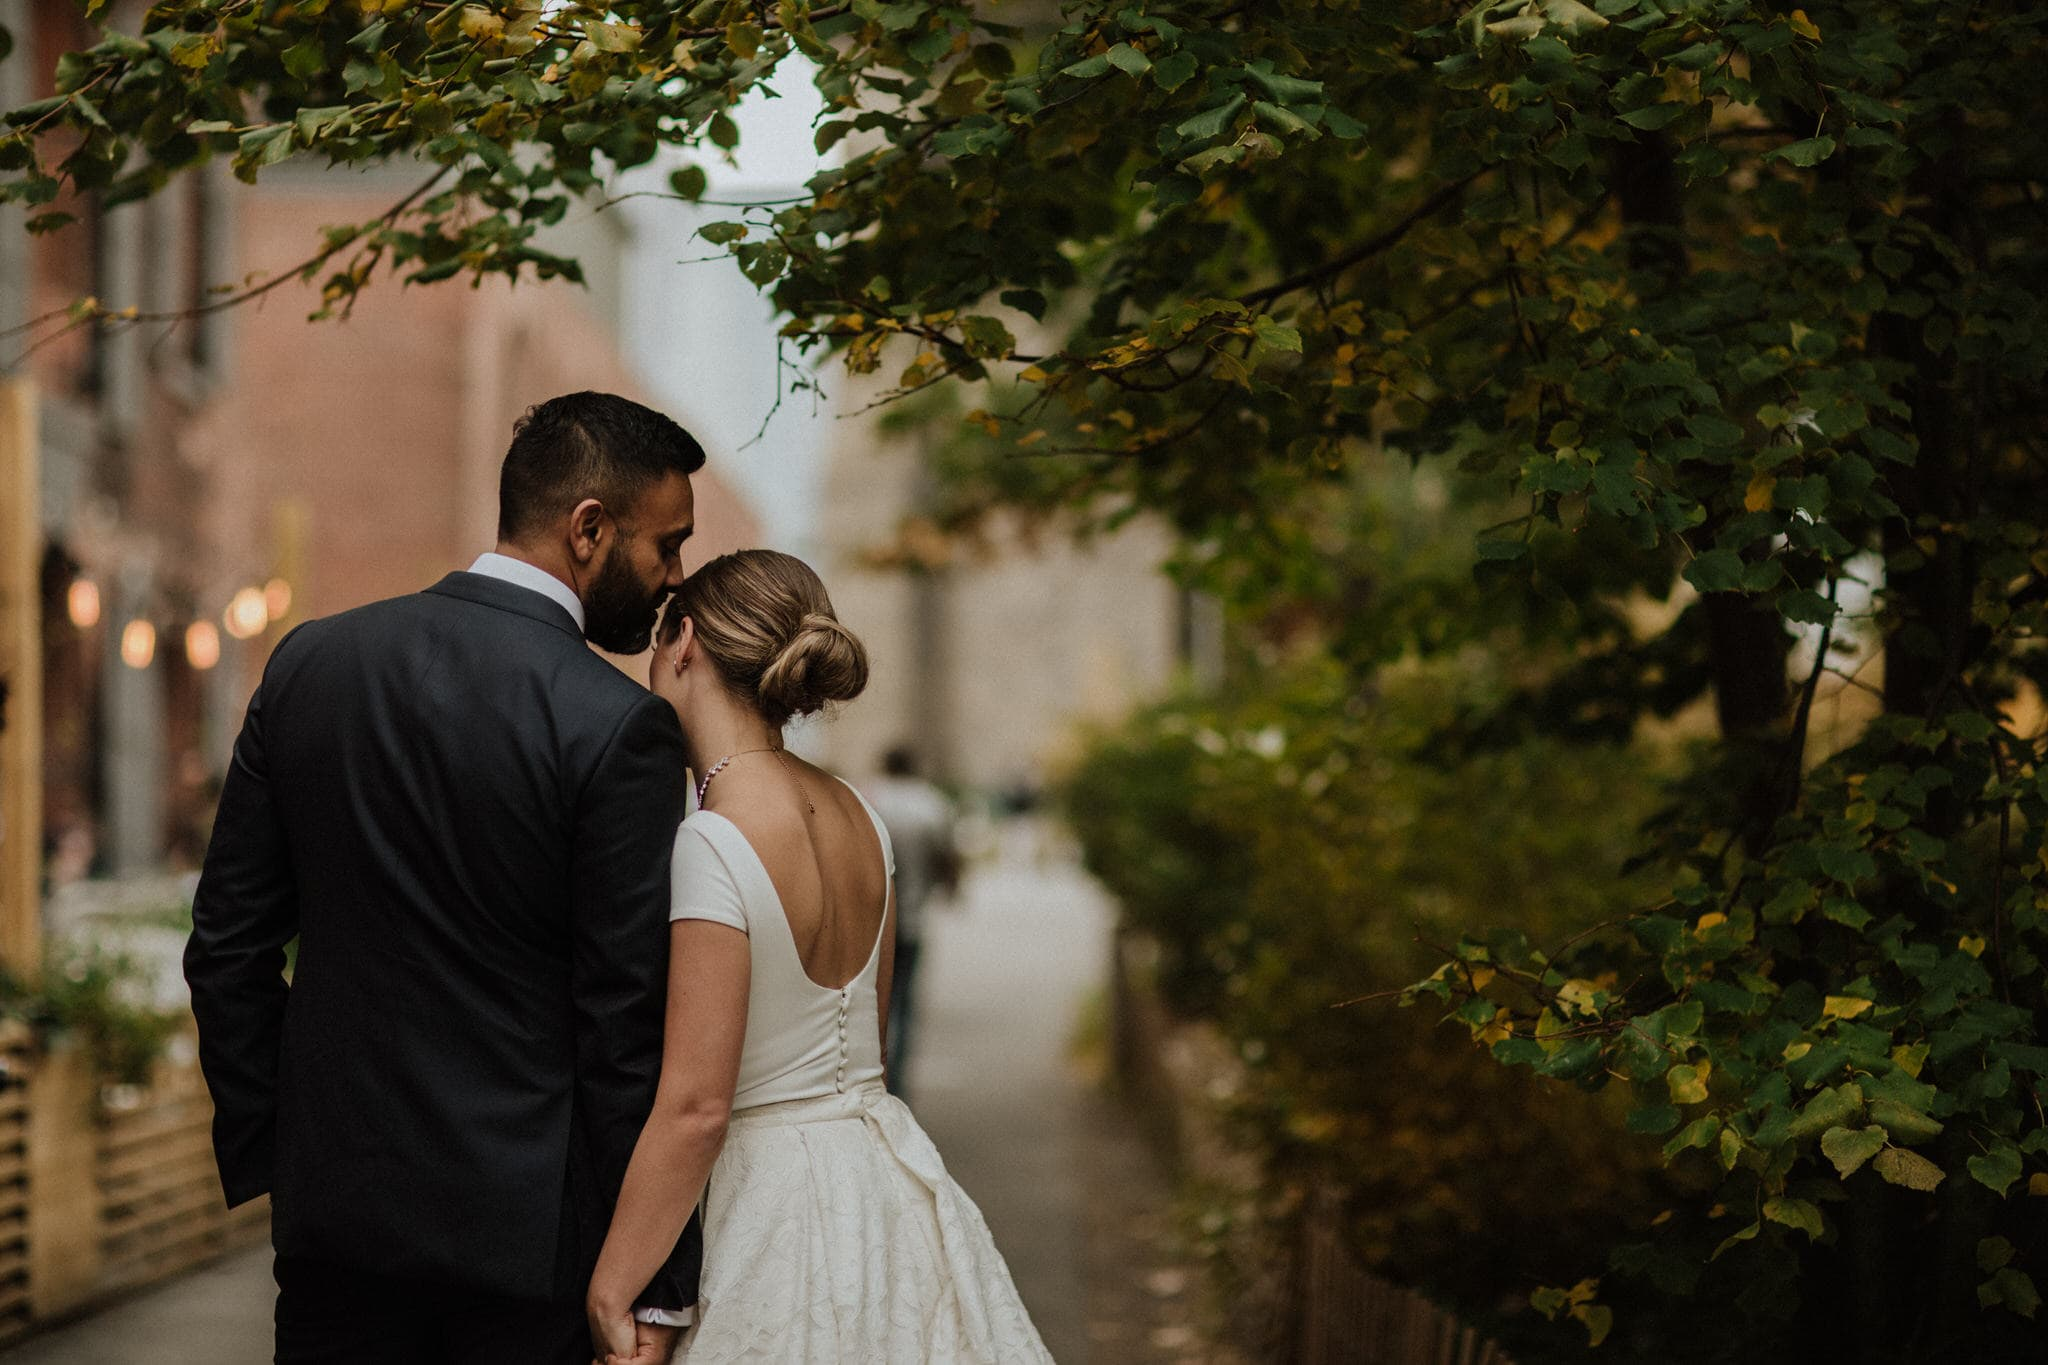 The bride and groom share a moment under the trees in Brooklyn, New York. Wedding Photographer Brent Calis.